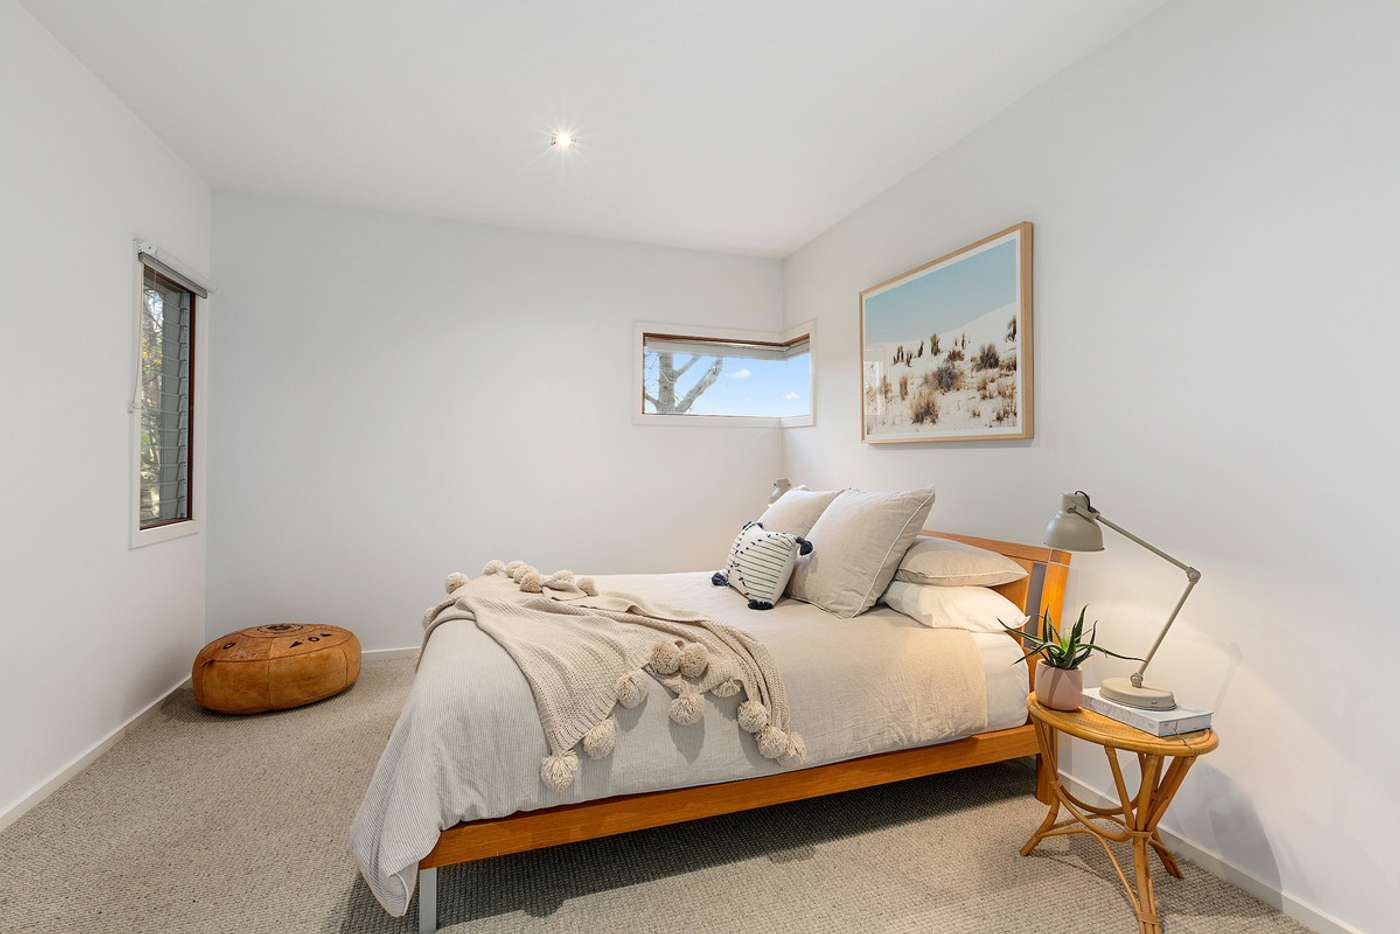 Seventh view of Homely house listing, 18 Prescott Avenue, Mount Martha VIC 3934